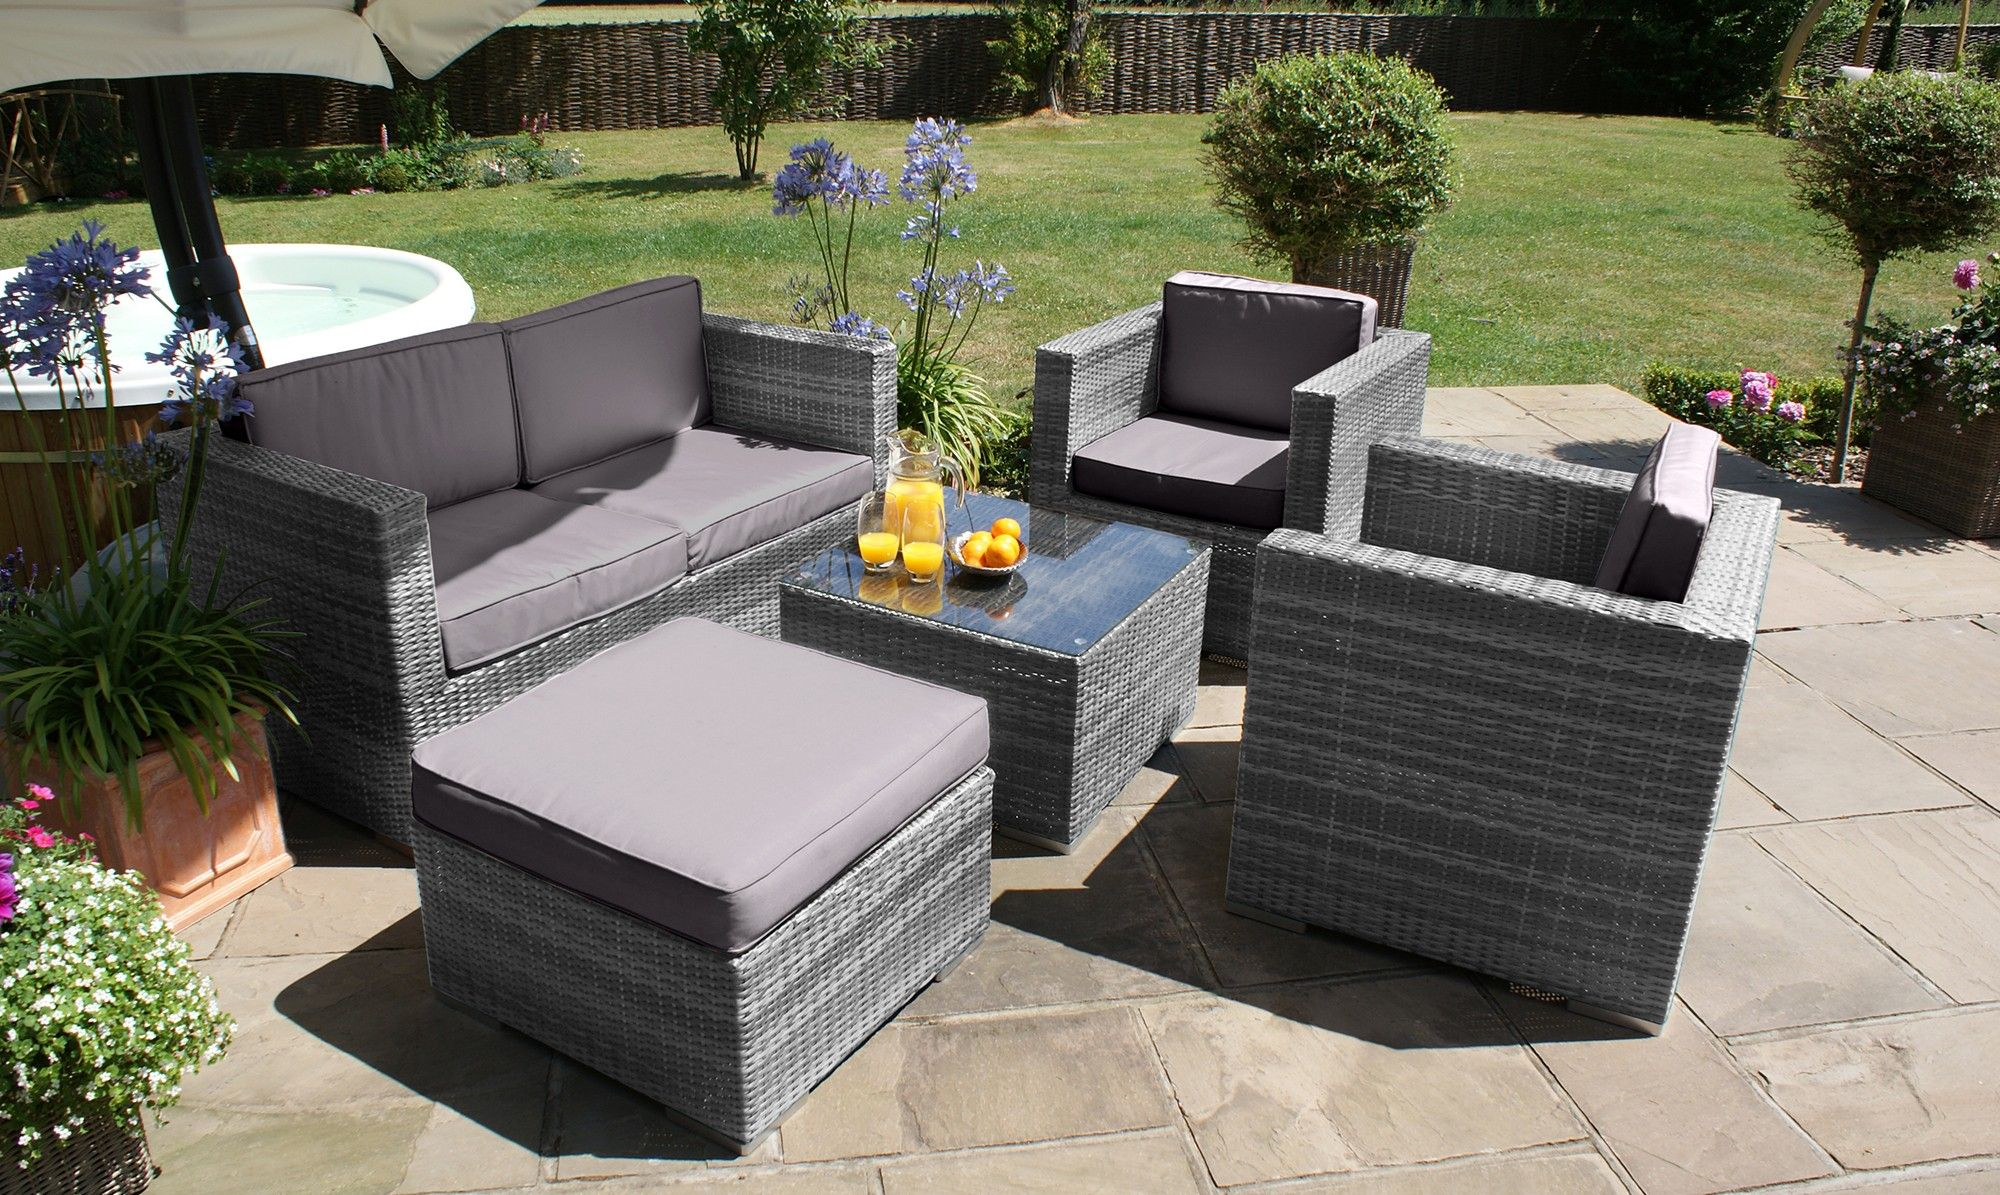 Rattan Garden Furniture Grey mauritius - corner sofa dining table - grey rattan - fishpools